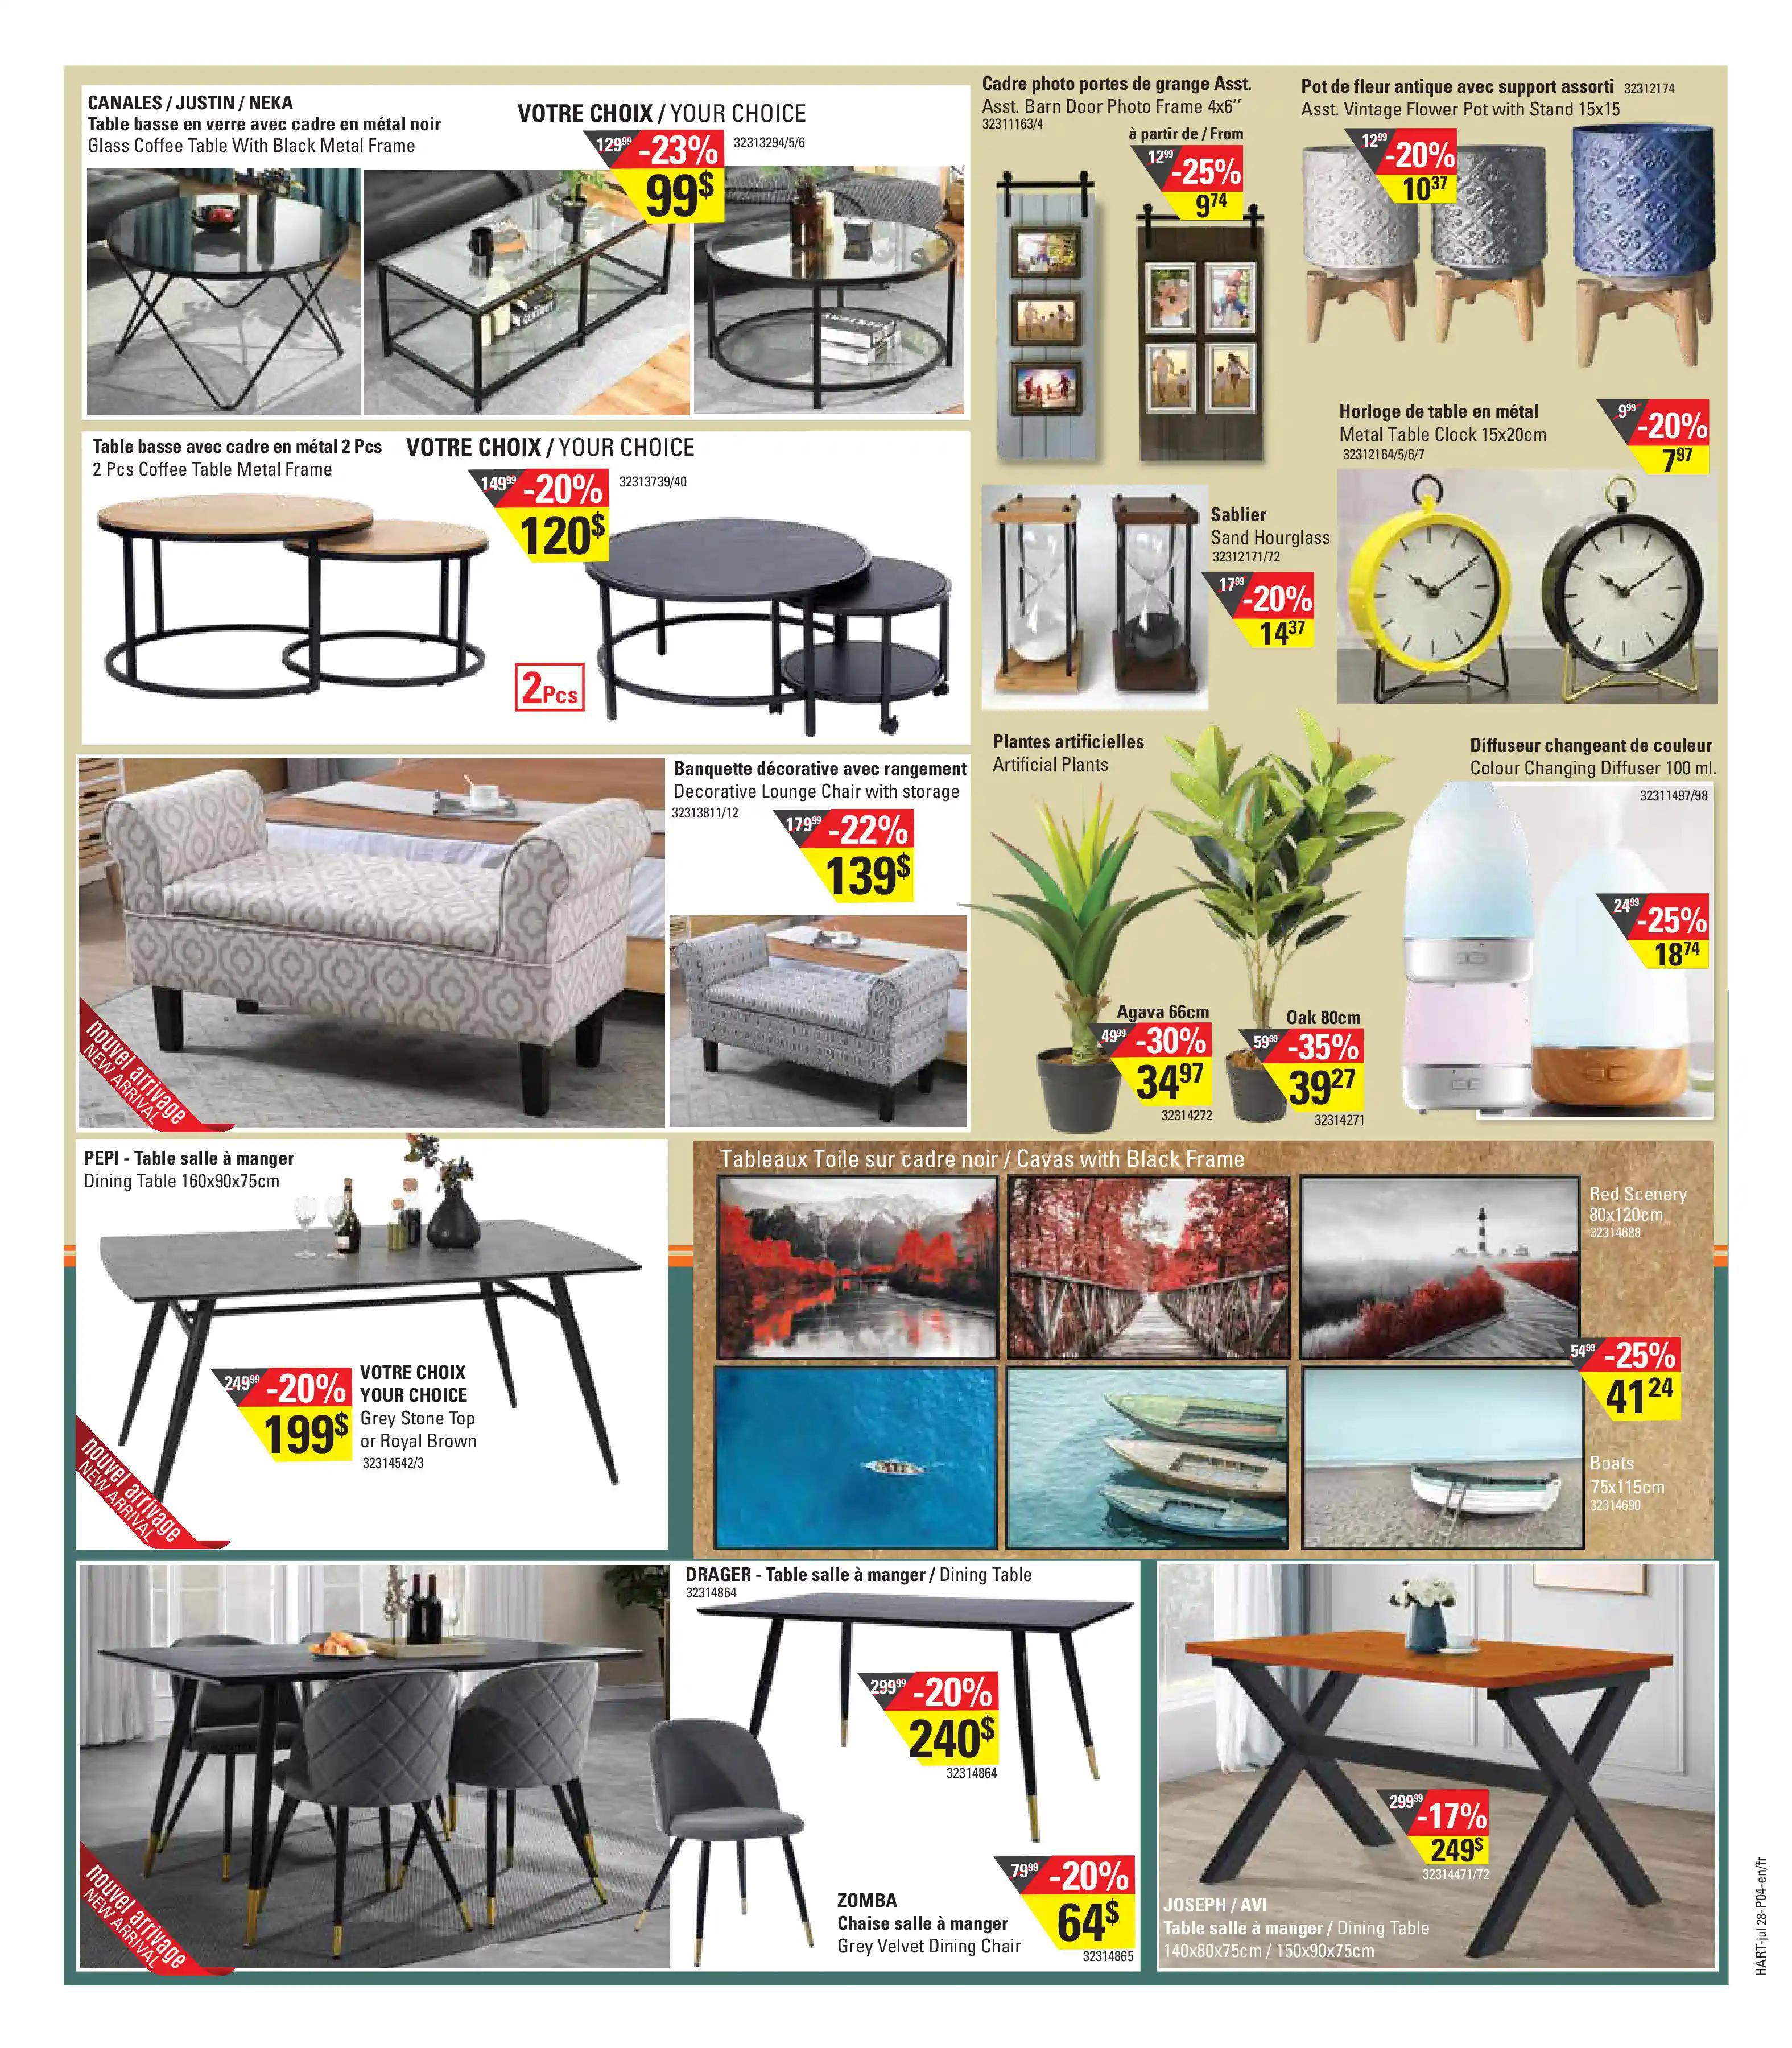 Hart - Weekly Flyer Specials - Page 4